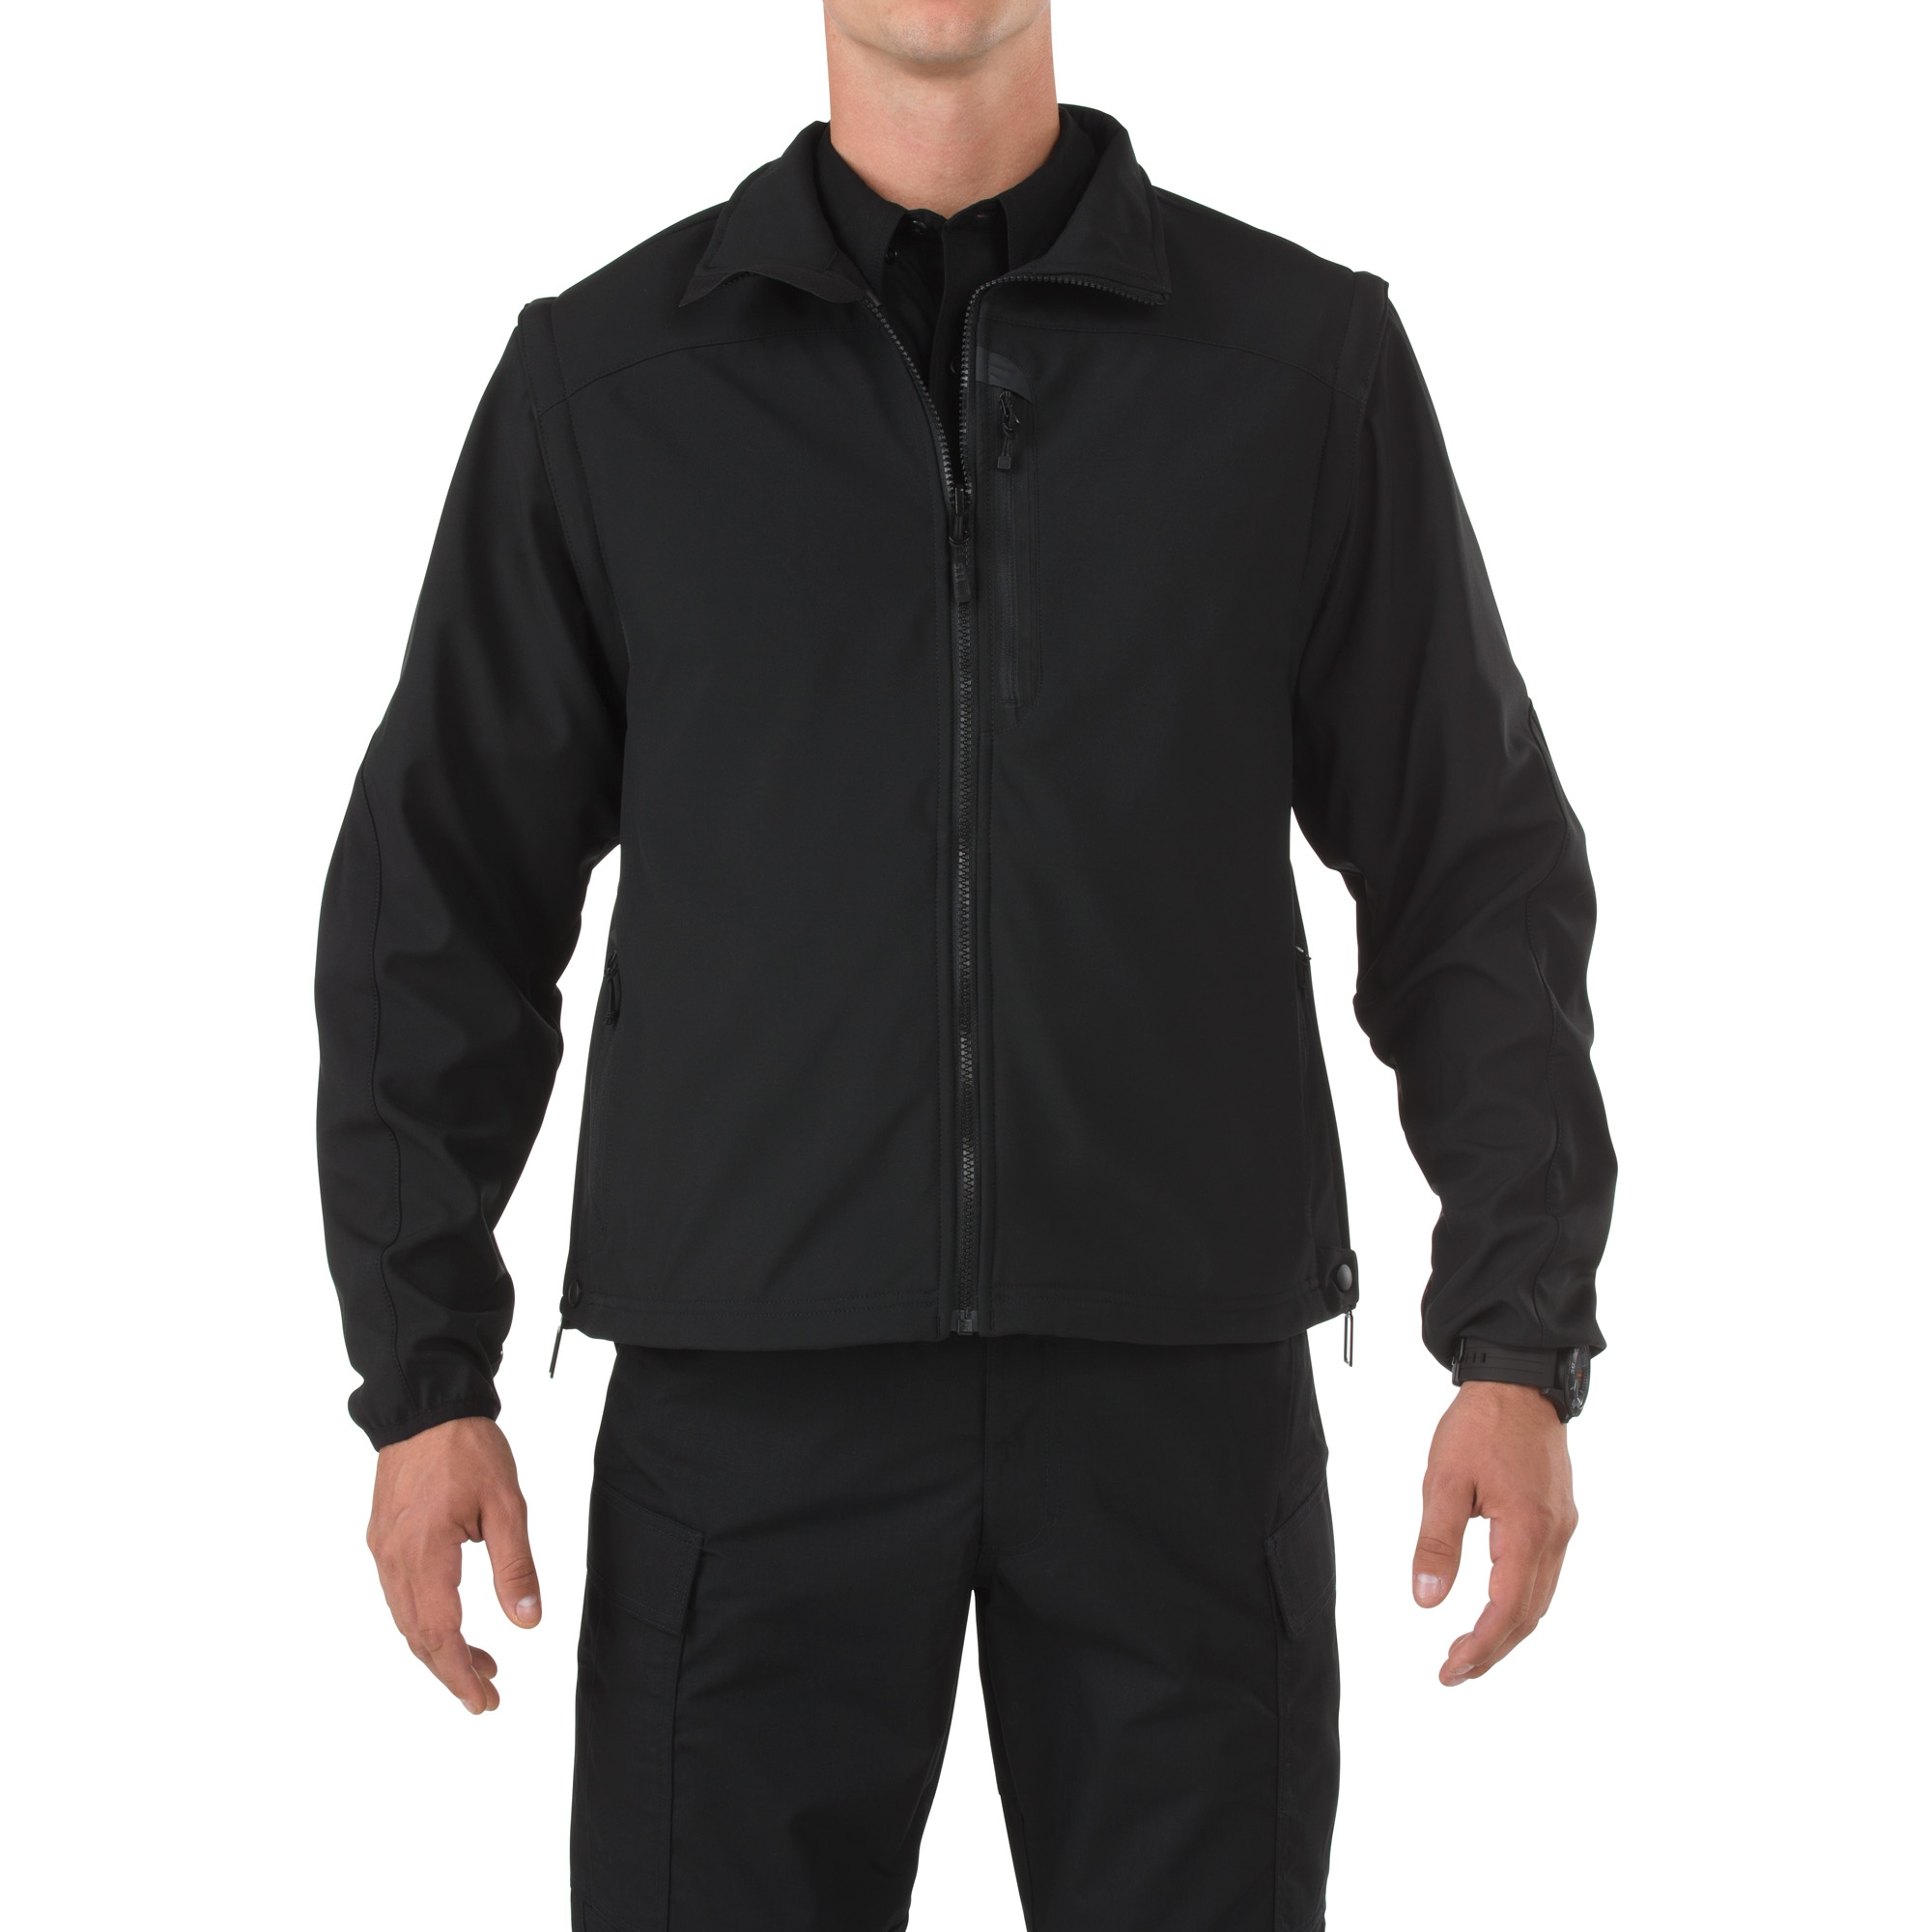 5.11 Tactical Men's Valiant Softshell Jacket (Black) thumbnail